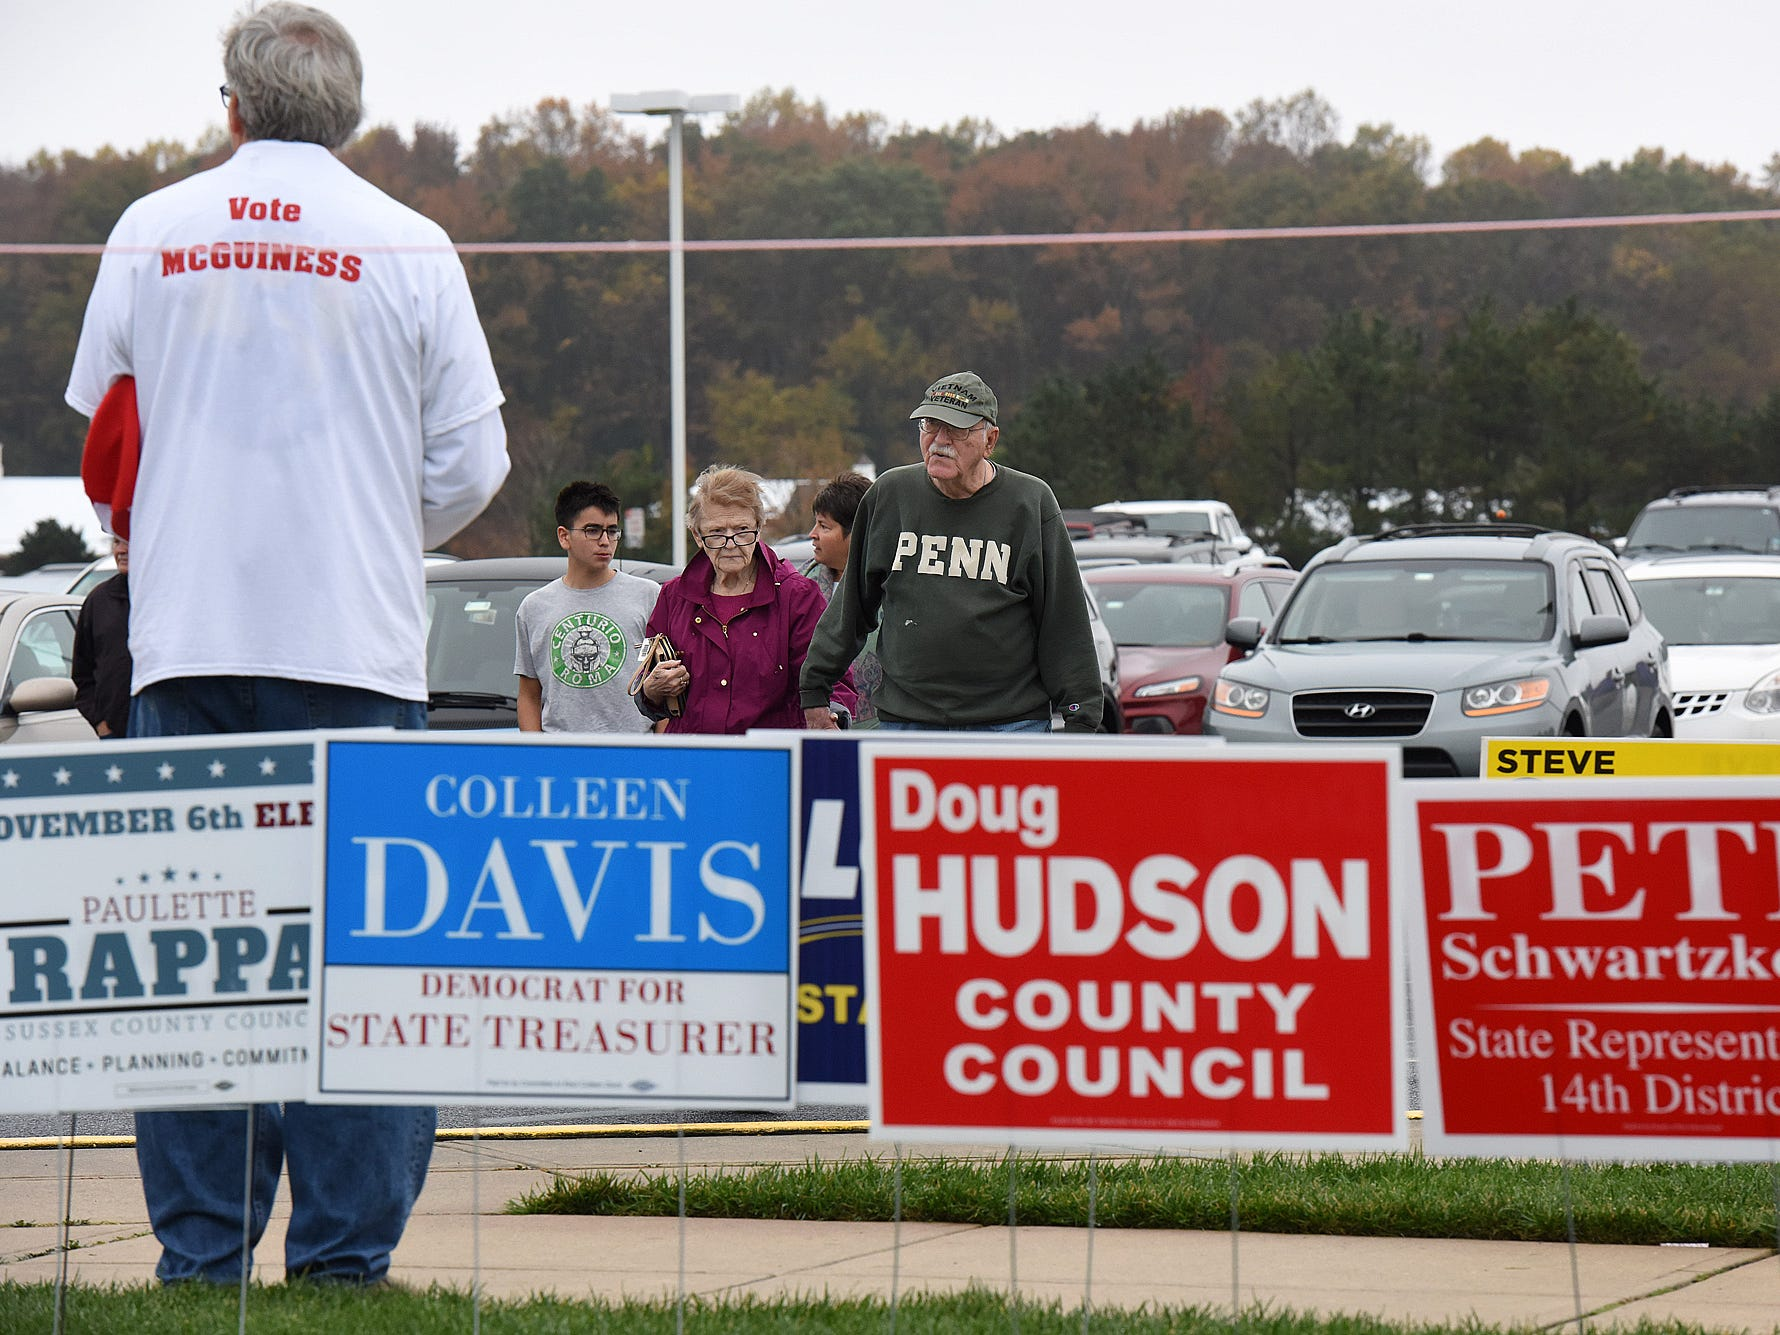 Voter turnout in eastern Sussex County has been steady at polling places in Rehoboth, Roxana and Angola as candidates still greet supporters for their support.